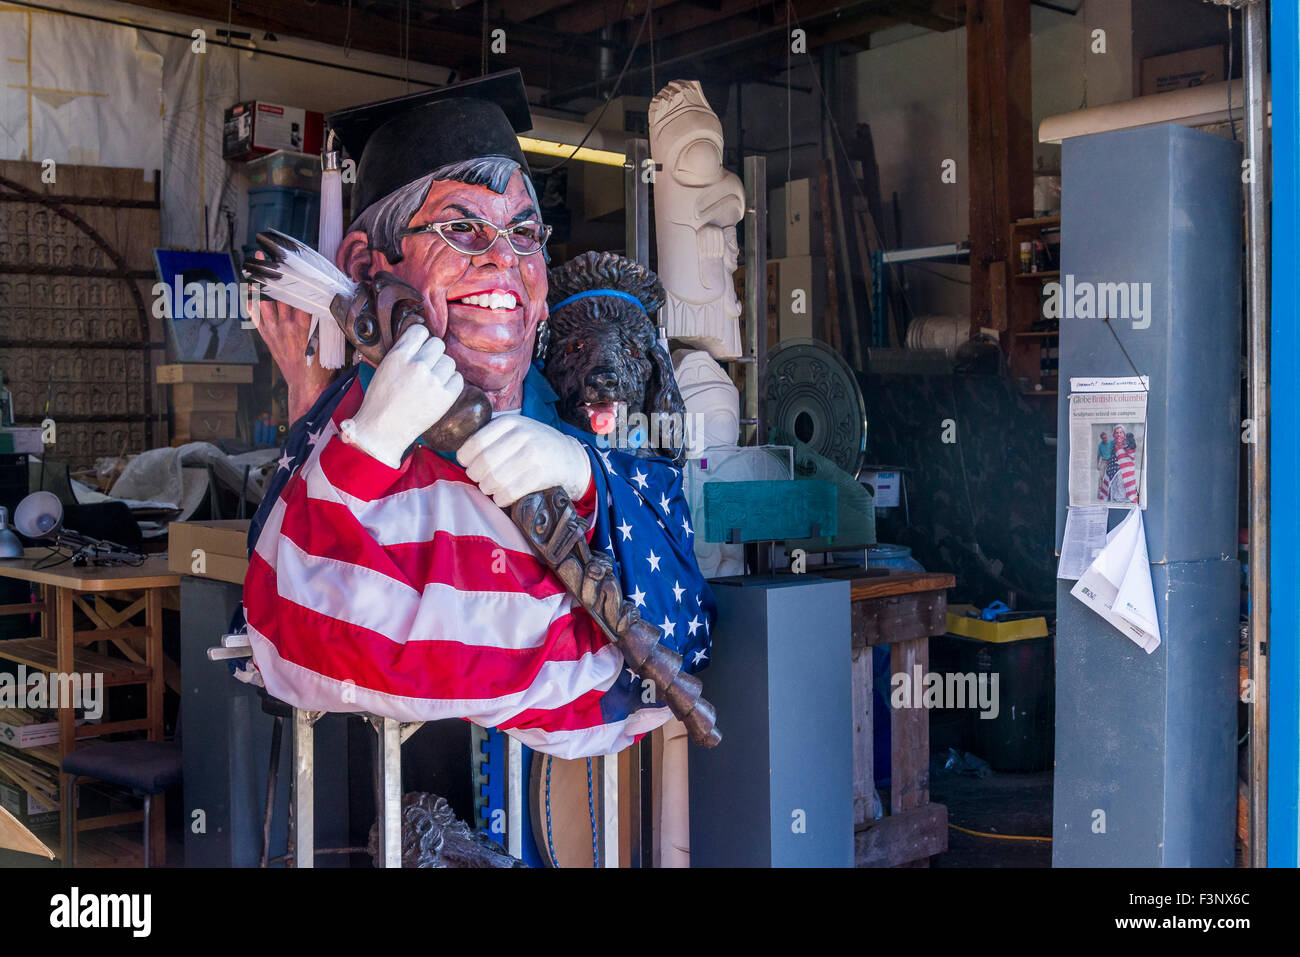 Banned caricature protest sculpture by George Rammell, art instructor at Capilano University, of university spresident - Stock Image